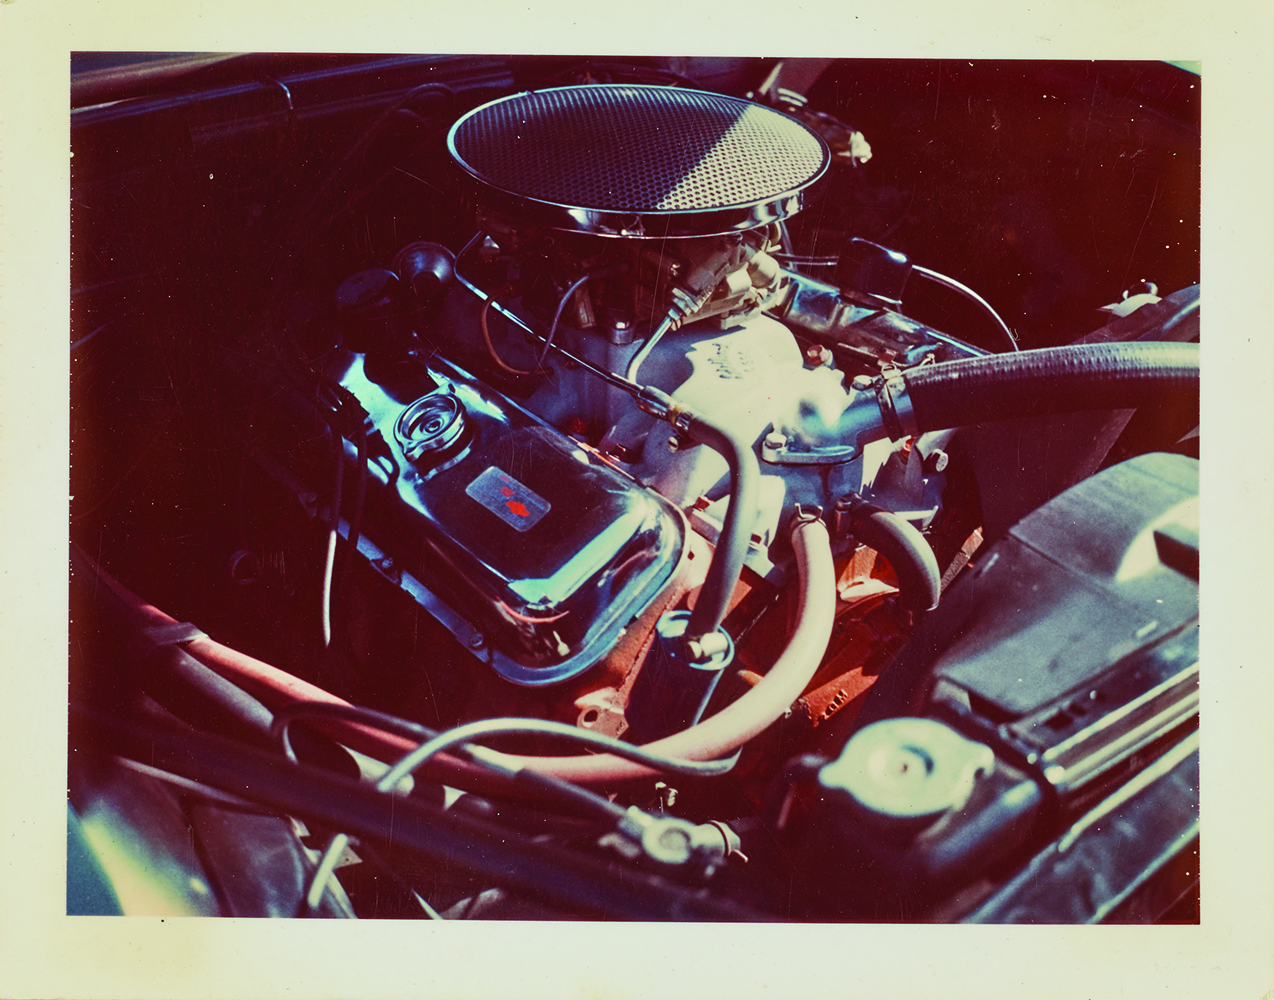 http://davidrowan.org/files/gimgs/53_engine.jpg